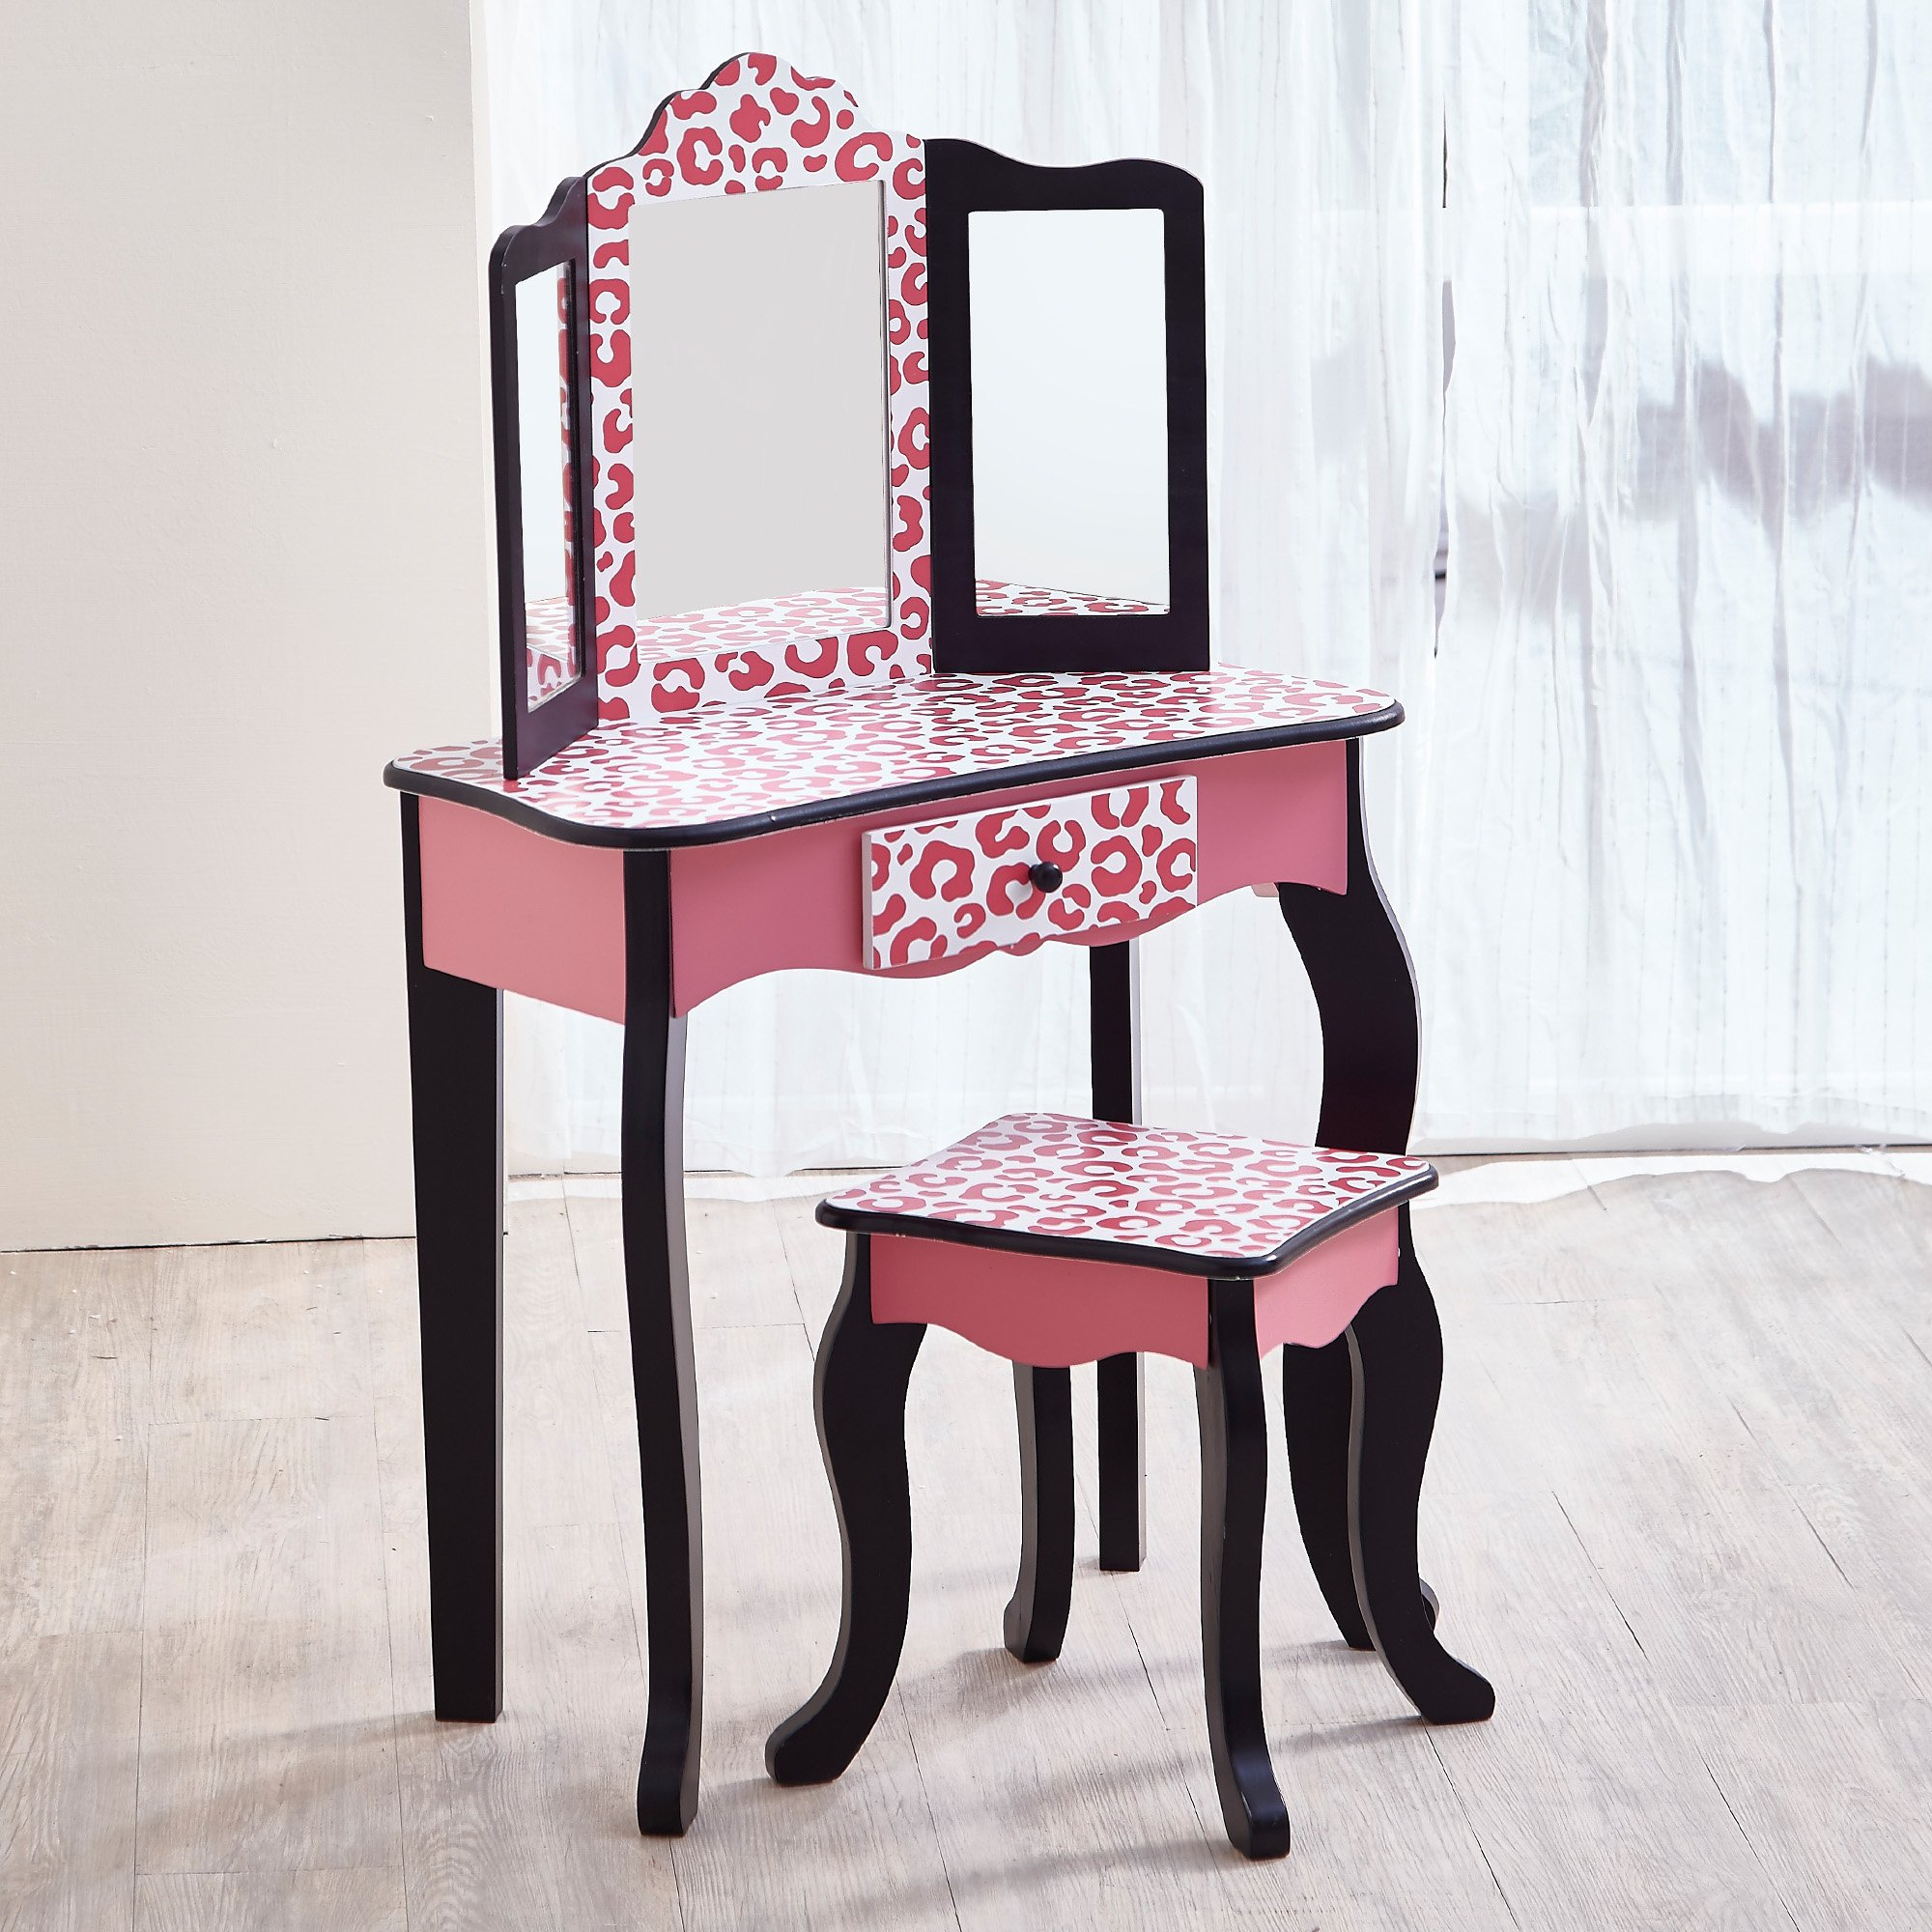 Teamson Kids - Fashion Prints Girls Vanity Table and Stool Set with Mirror - Leopard (Pink/ Black) by Teamson Kids